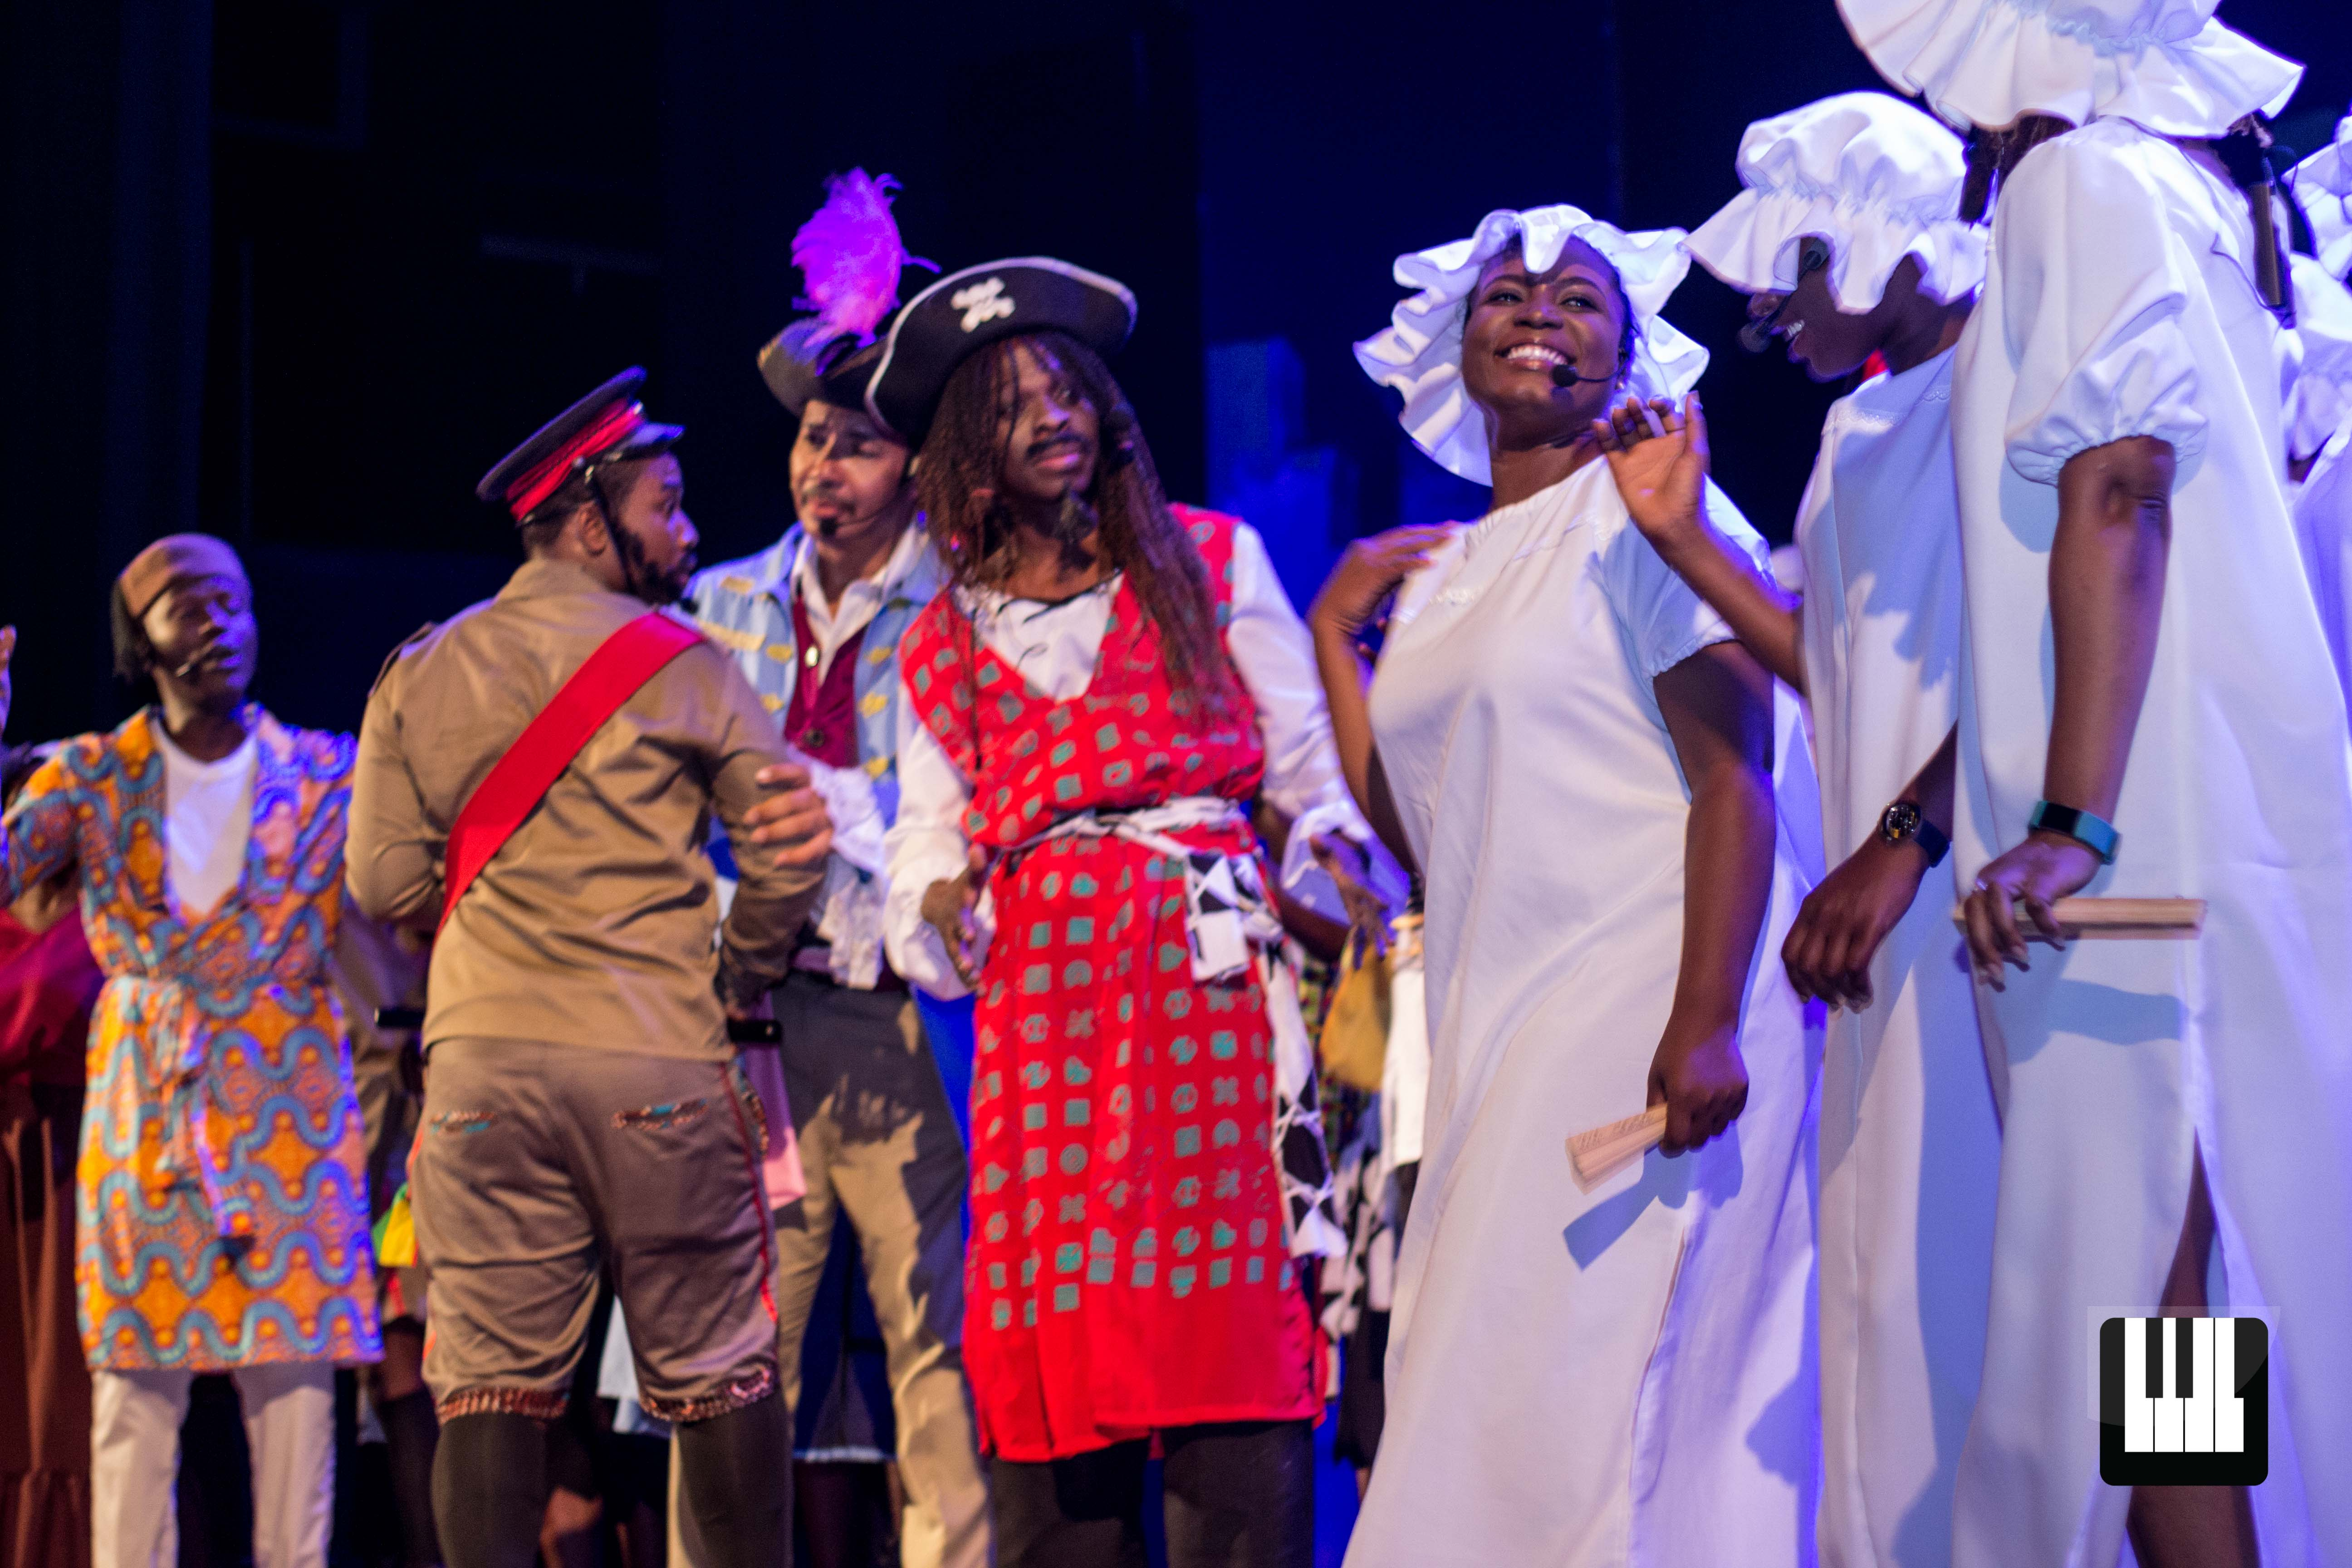 The Pirates of Penzance Achimota School's alumni and current students staged a remarkable revival of Gilbert & Sullivan's The Pirates of Penzance at the National Theatre. Choral Music Ghana witnessed the entertaining production.